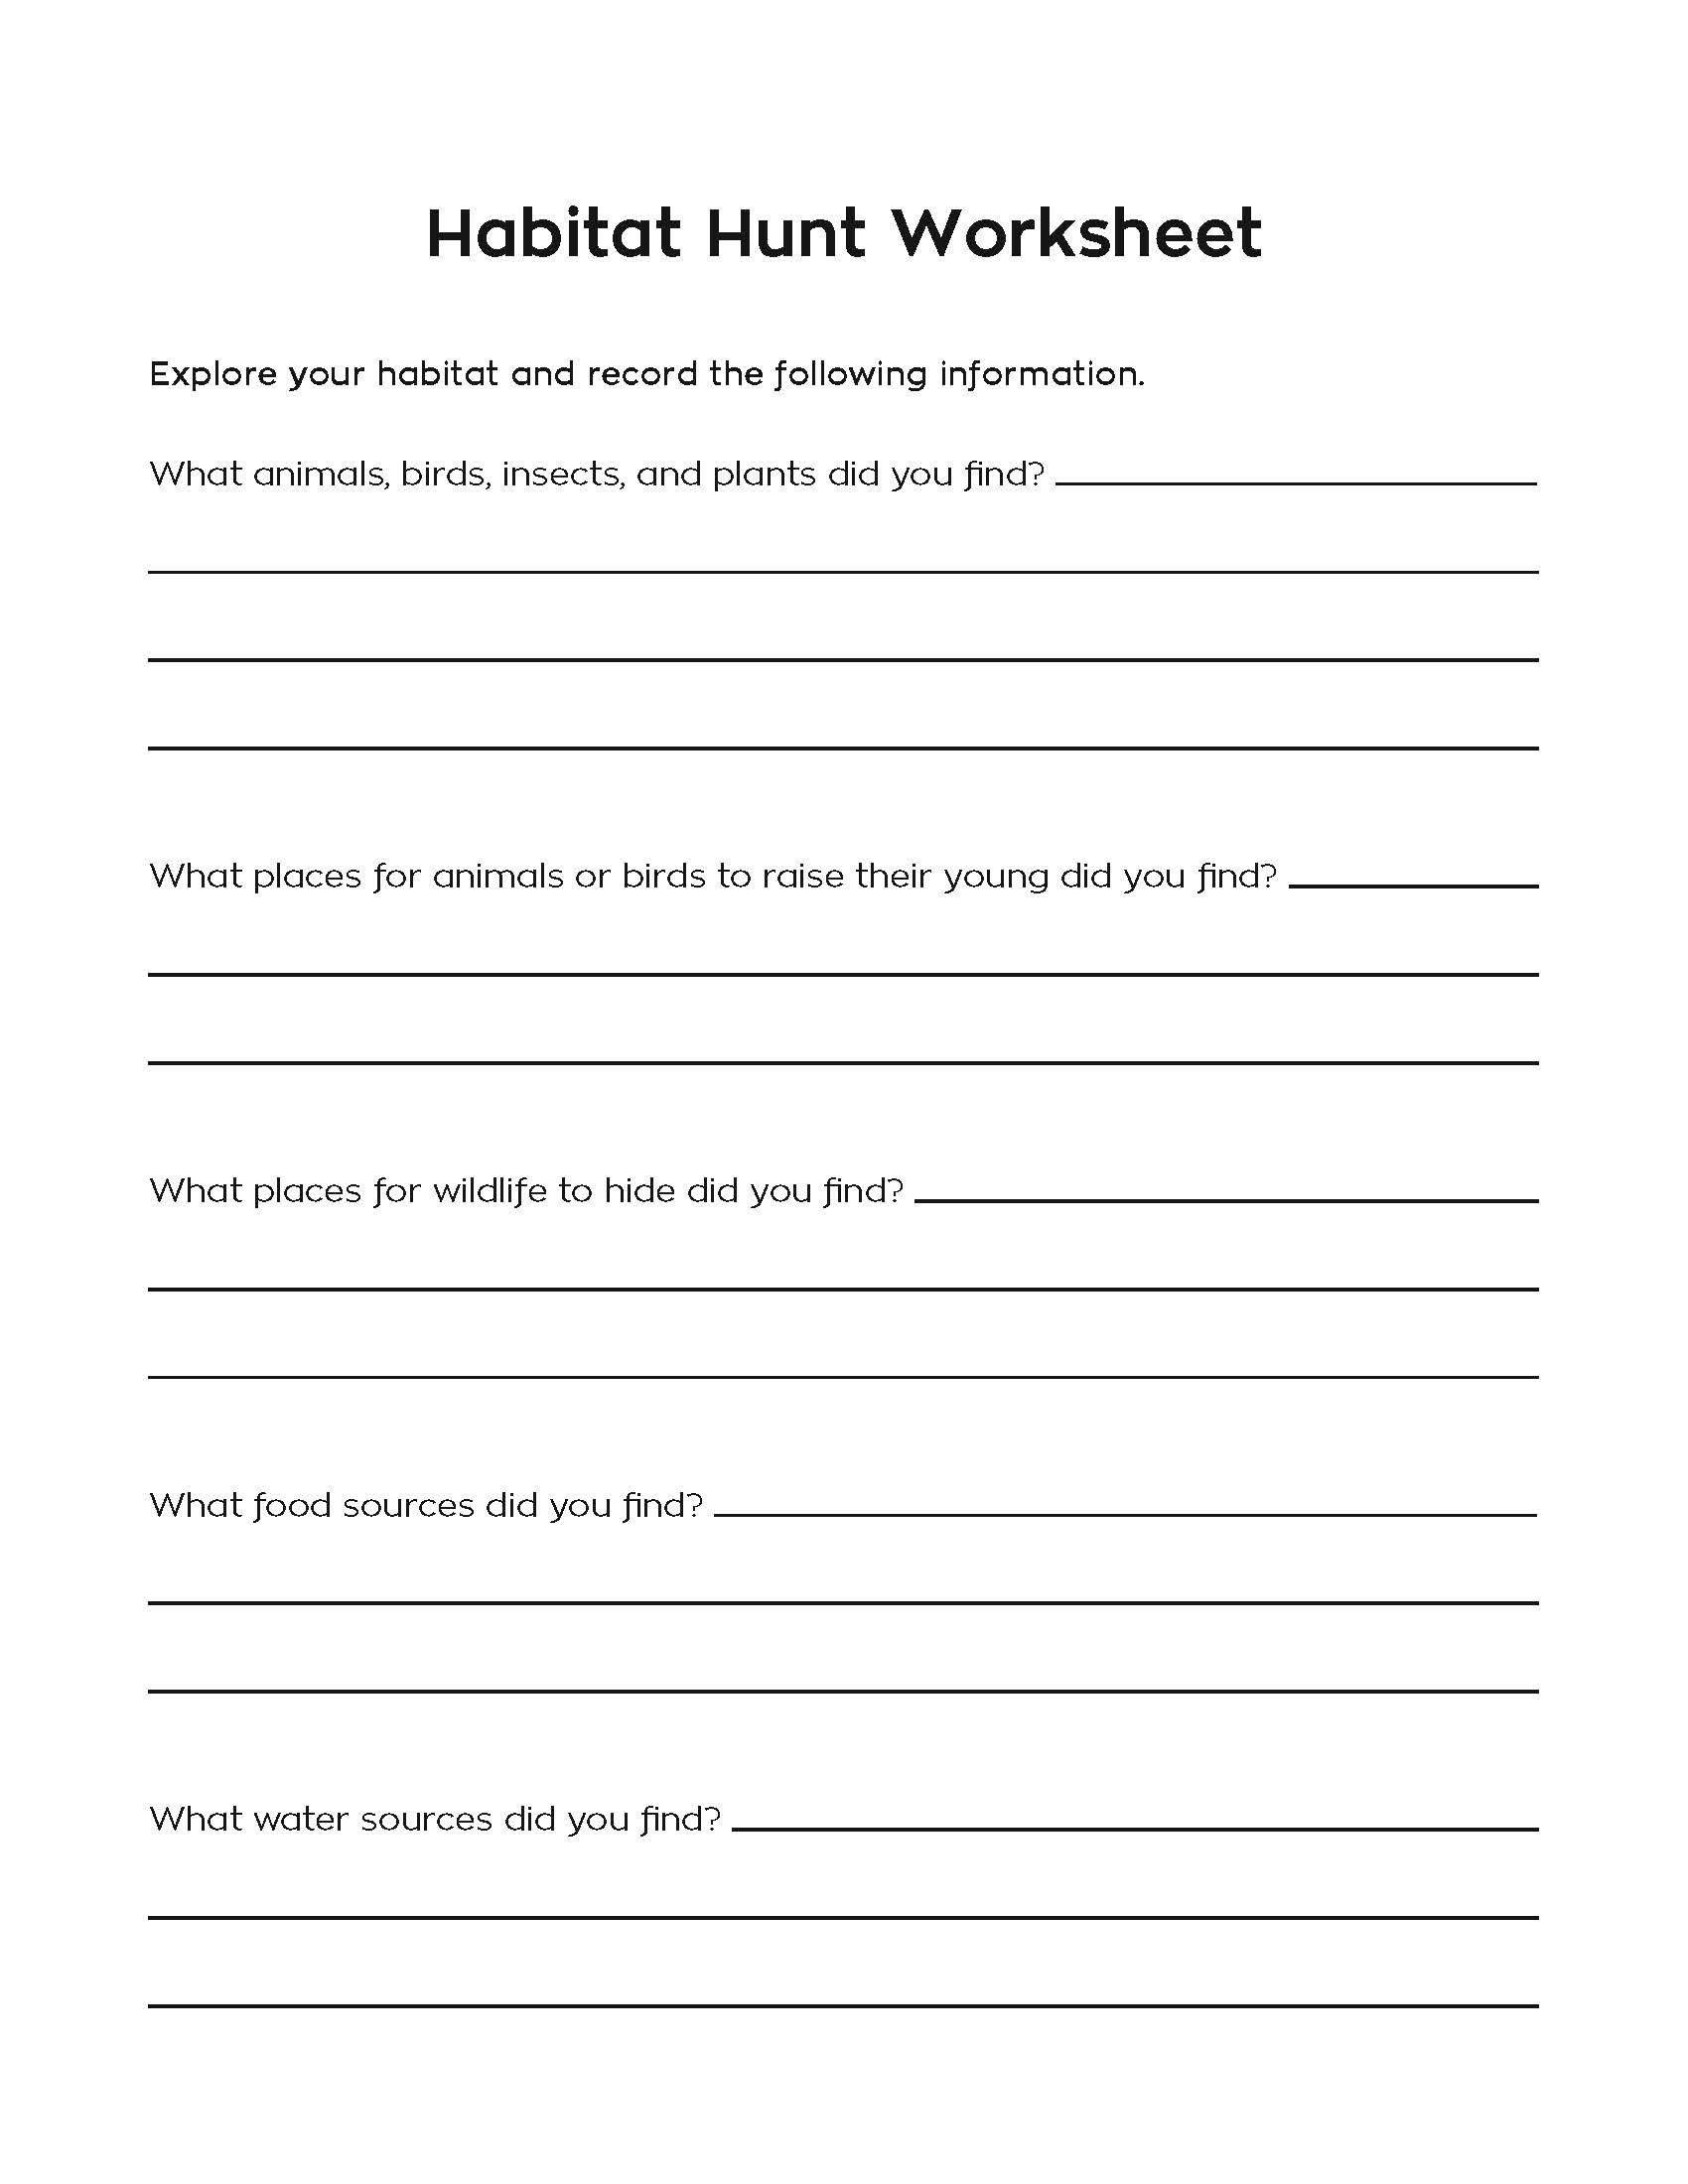 Meeting 12 Use This Worksheet For Your Habitat Hunt Helping Hand